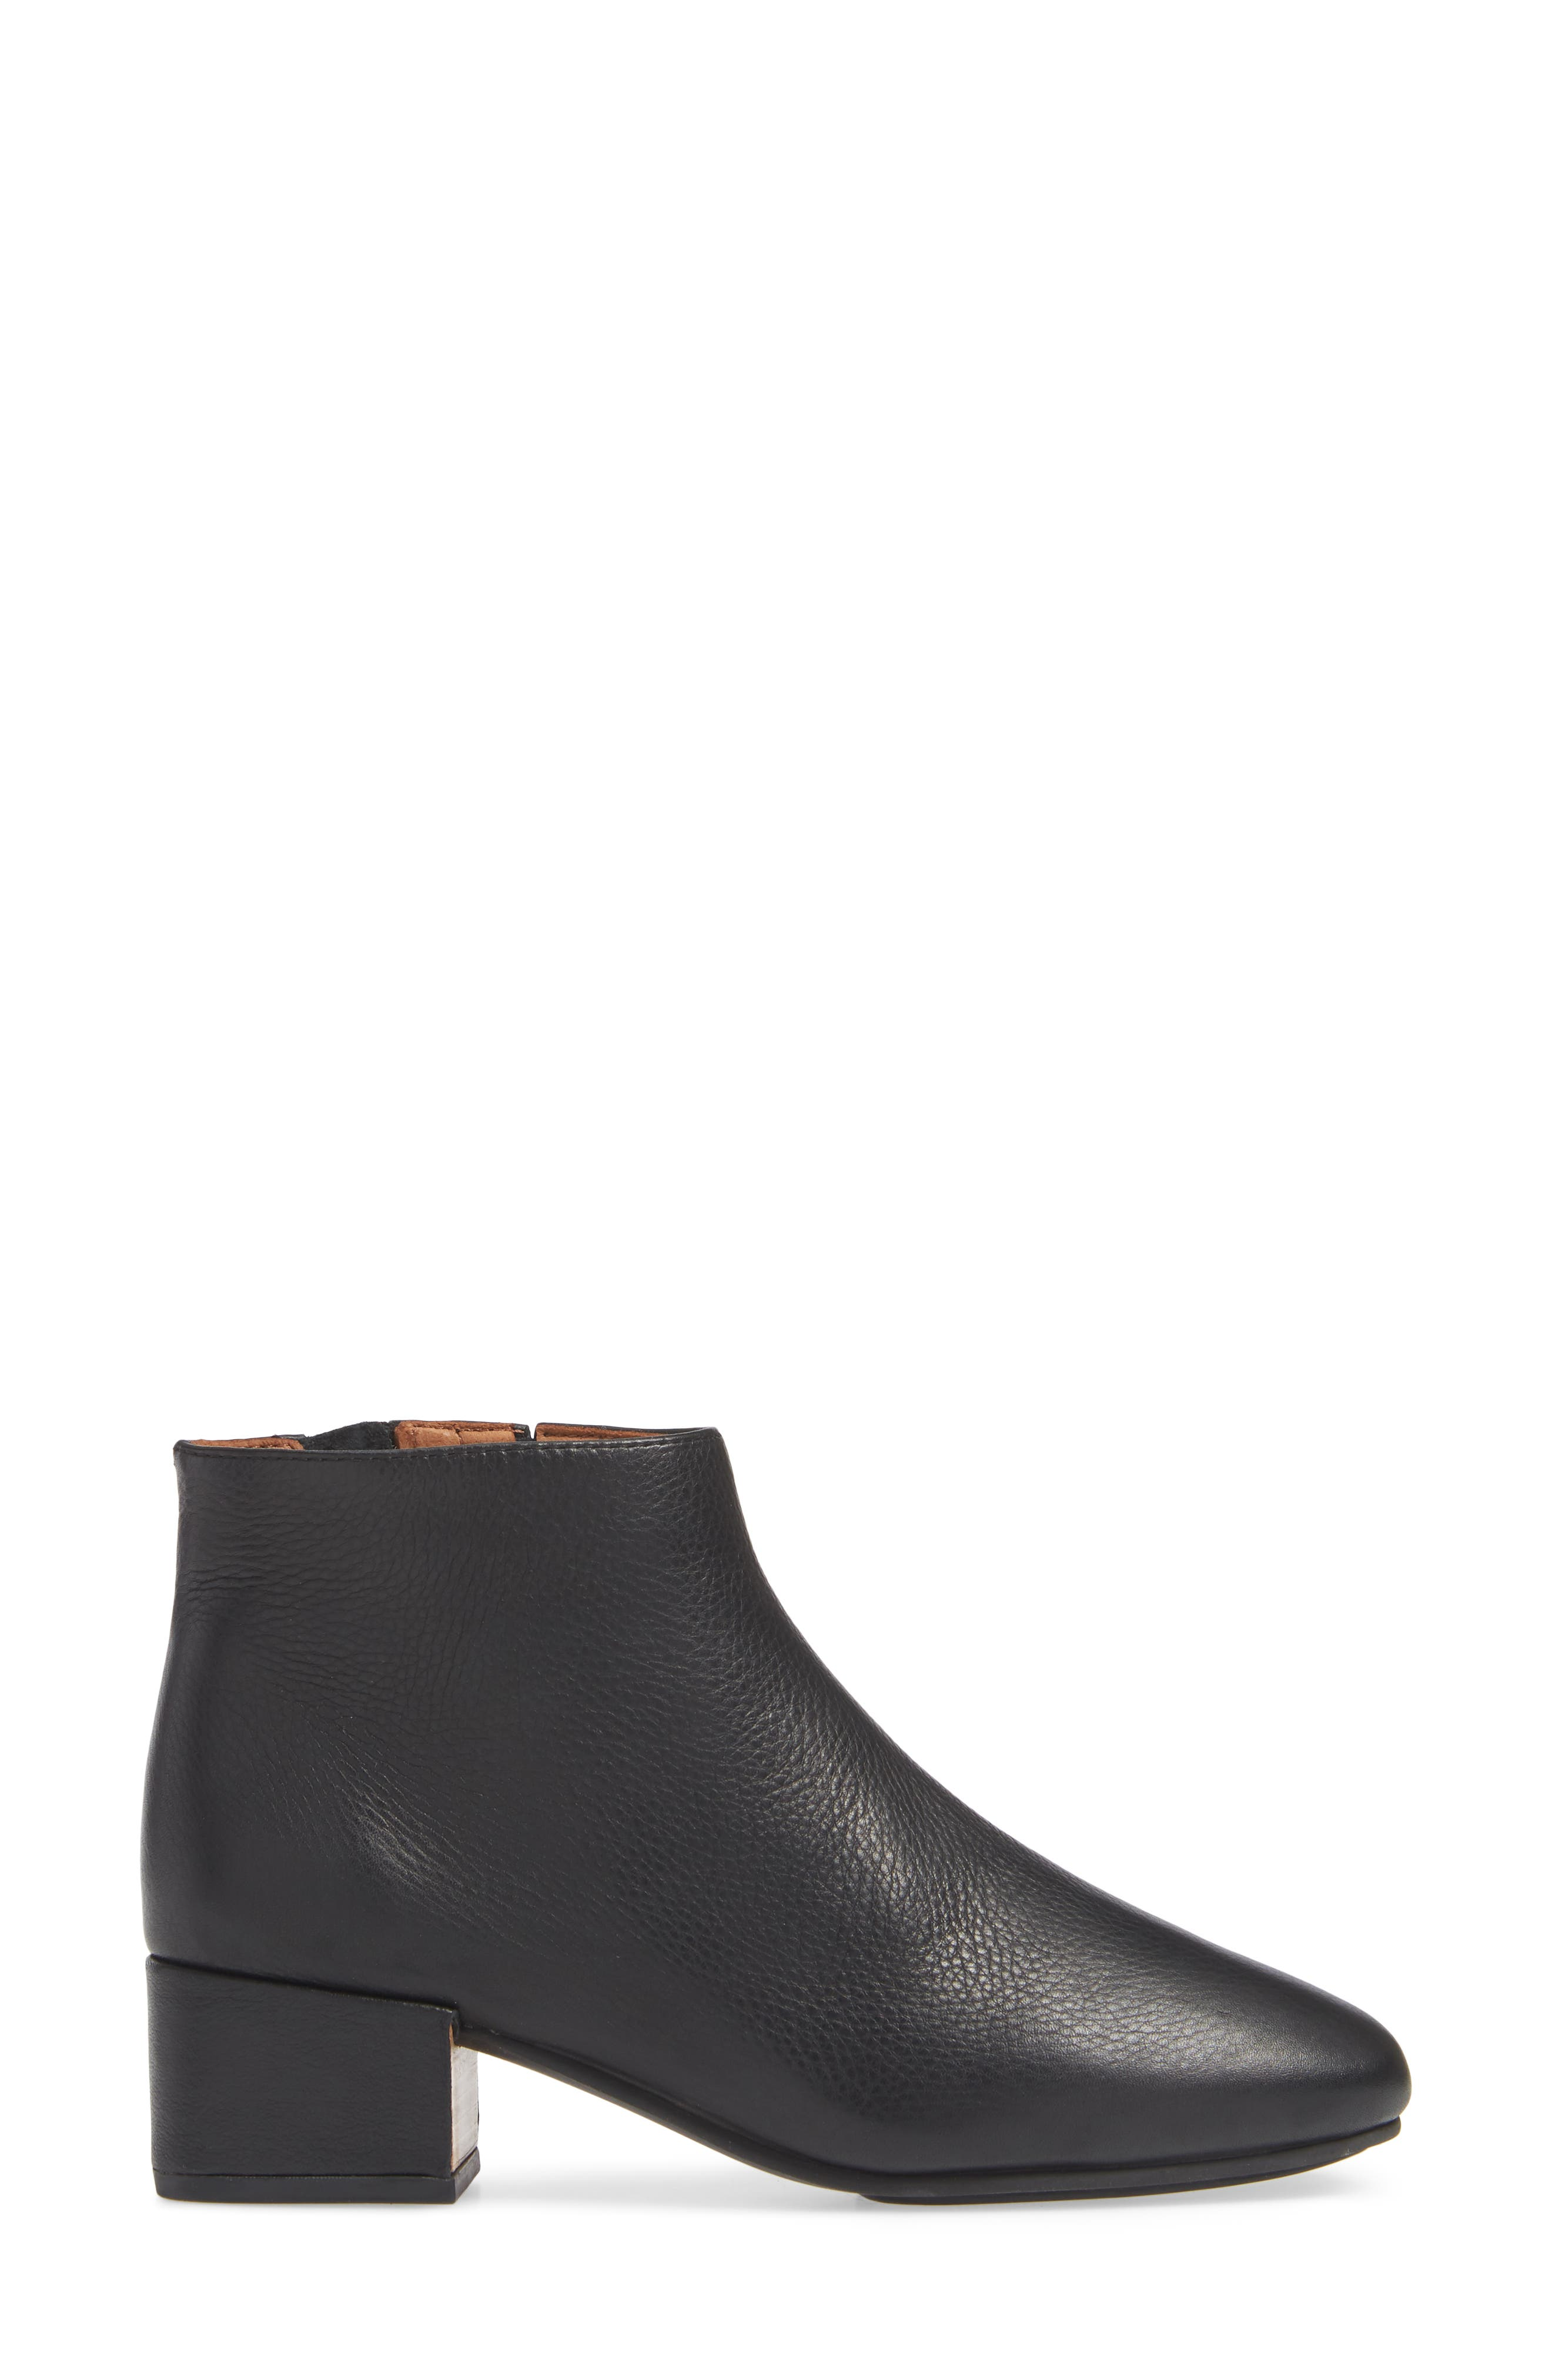 GENTLE SOULS BY KENNETH COLE, Ella Bootie, Alternate thumbnail 3, color, BLACK LEATHER